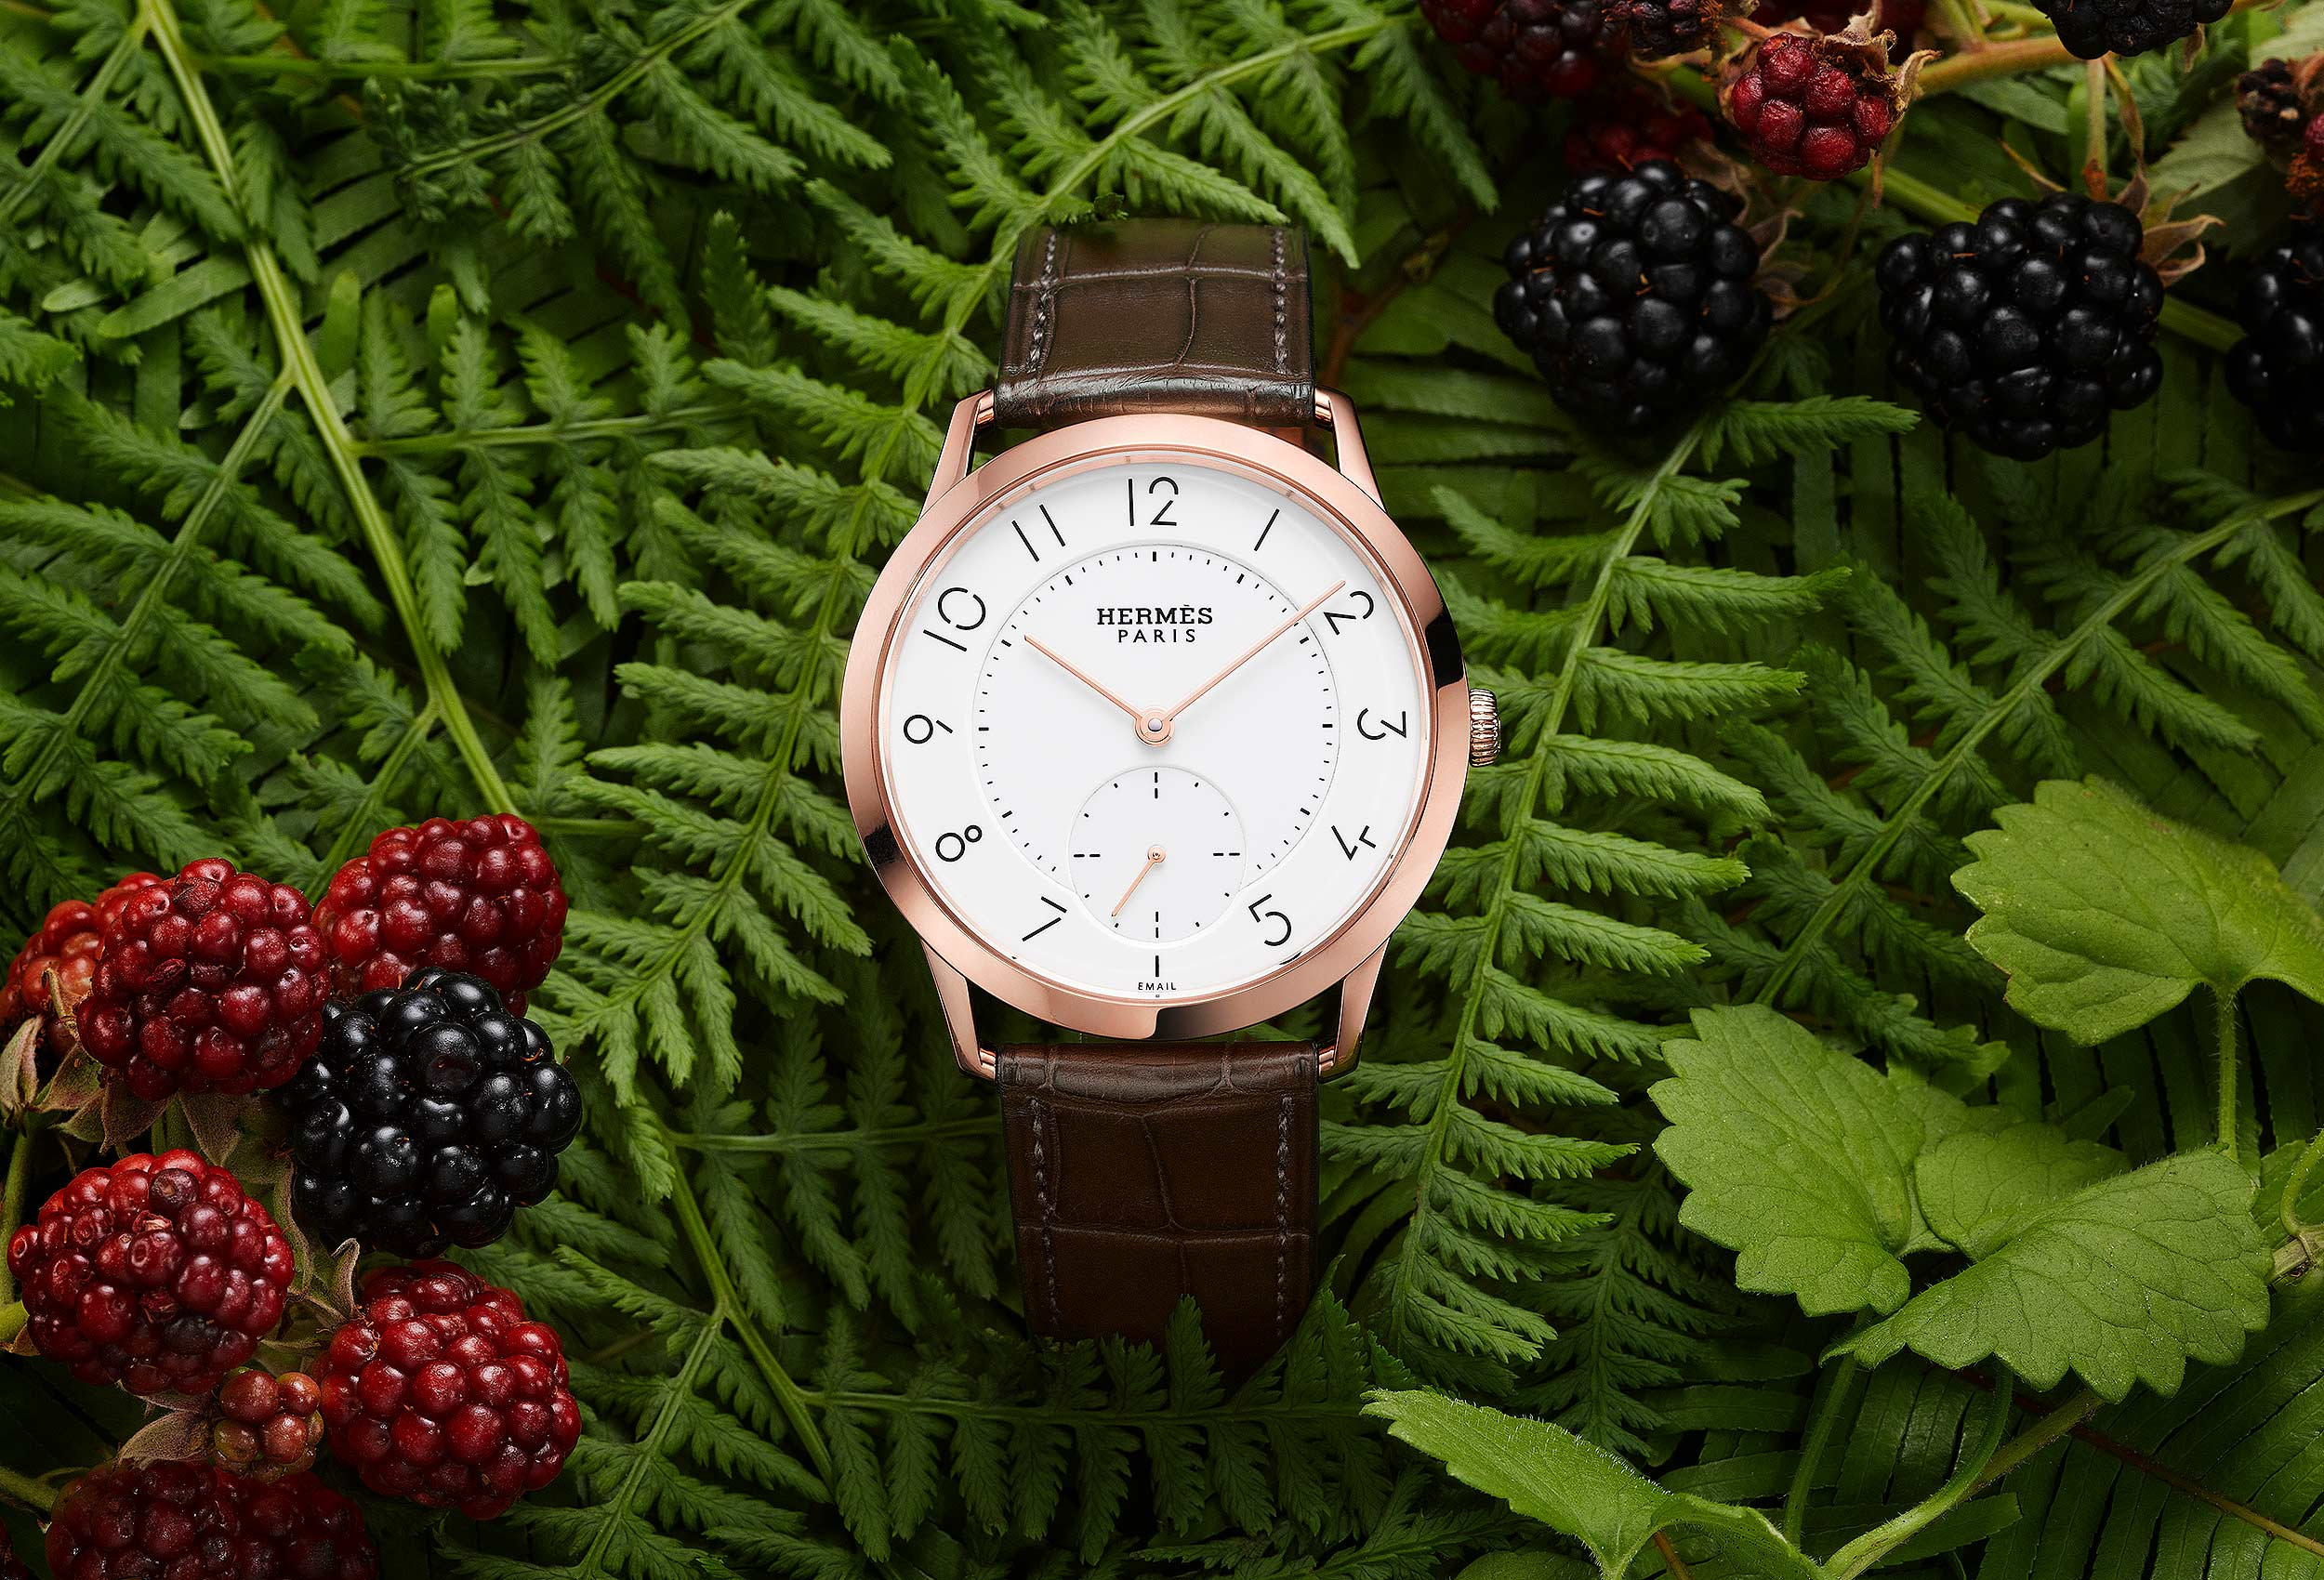 Hermes Watch with Foliage and Berries